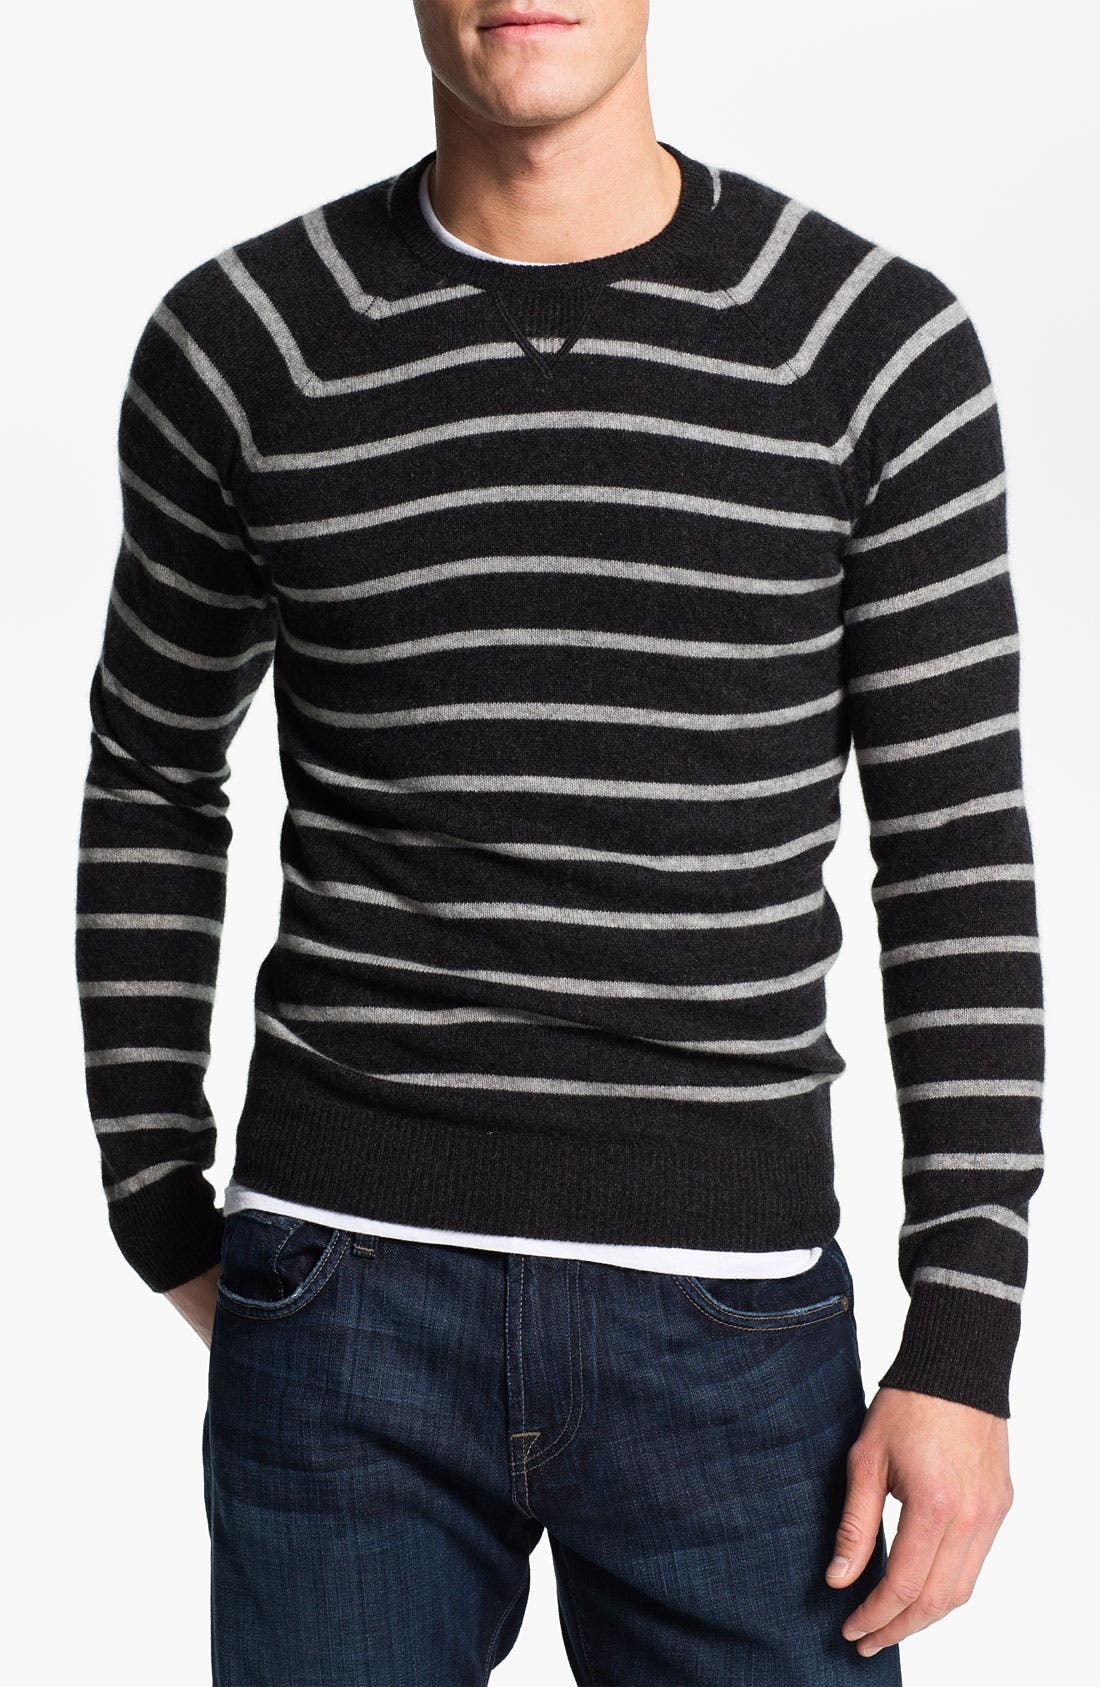 Alternate Image 1 Selected - 1901 Stripe Cashmere Sweater